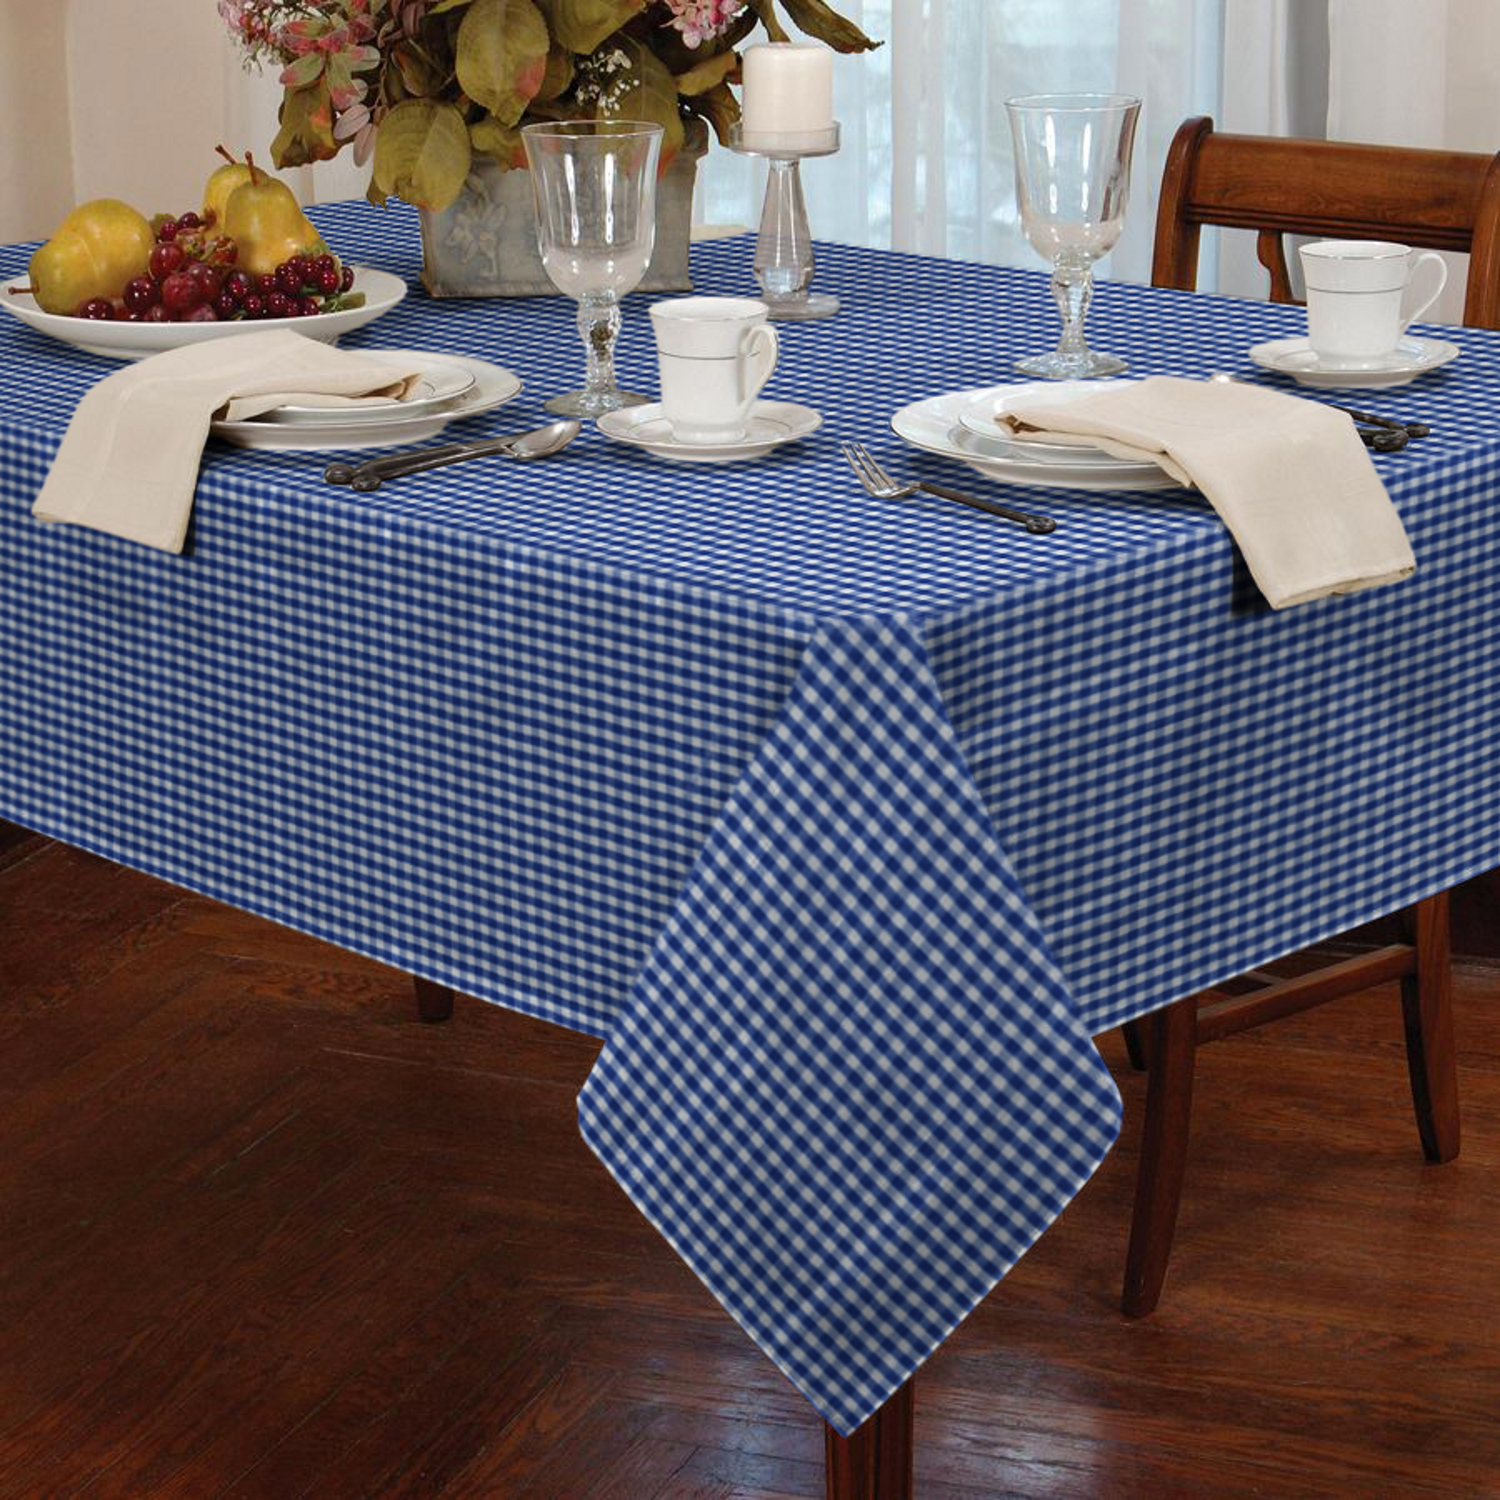 Tablecloth Traditional Gingham Check Round Square Oblong Kitchen